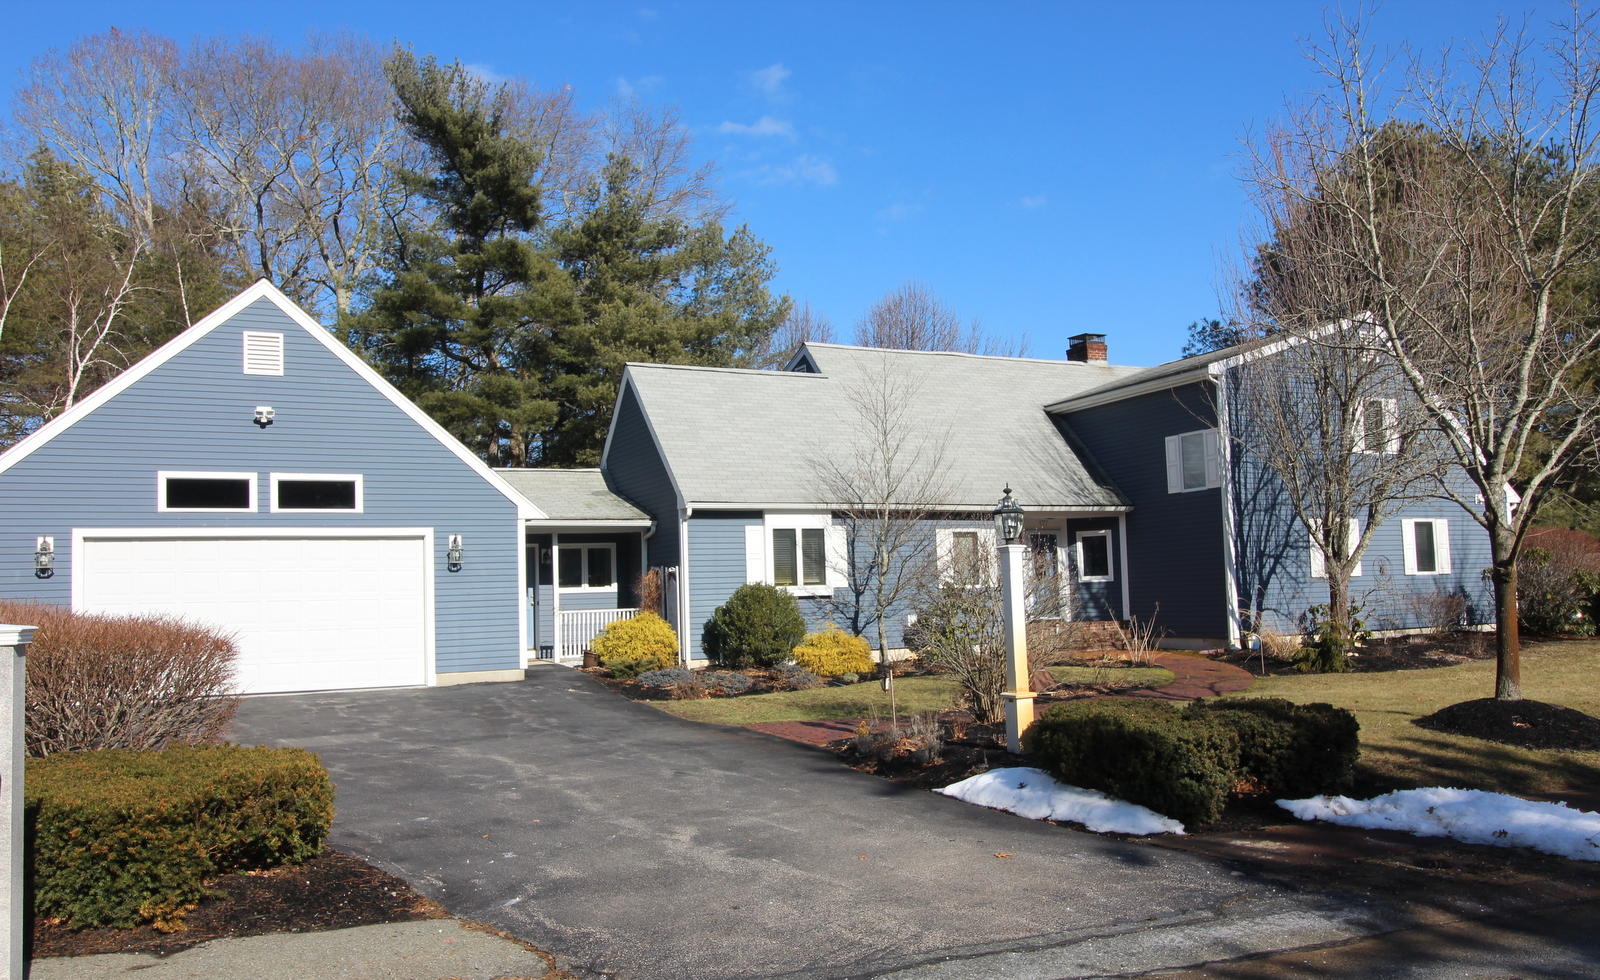 Single Family Home for Sale at Bright, Open, & Gleaming Home 177 Edgewater Drive Pembroke, Massachusetts 02359 United States